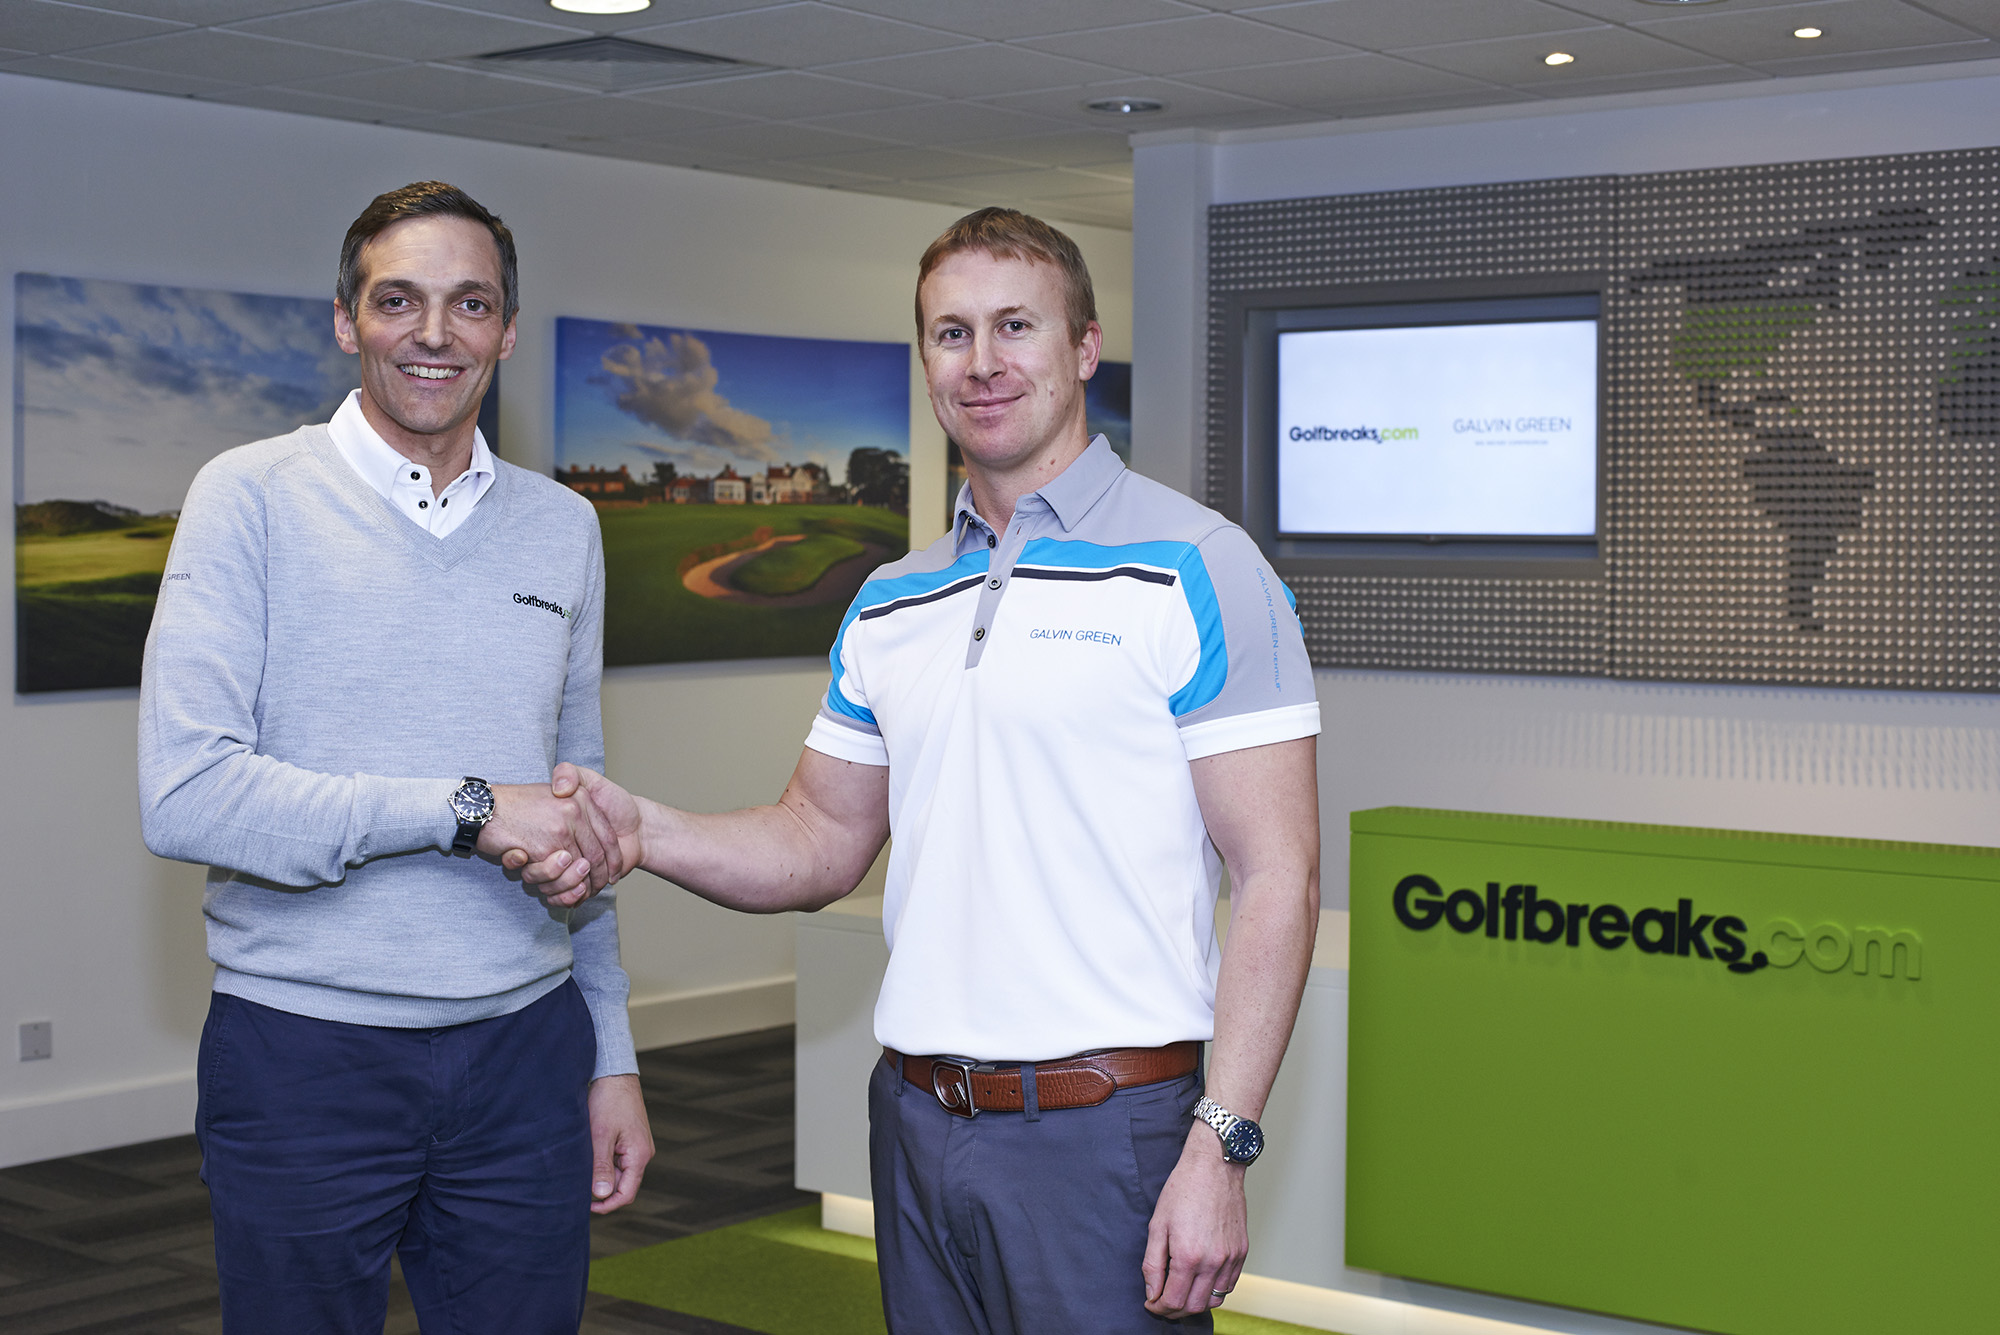 Golfbreaks.com's Keith Mitchell shakes hands with Galvin Green's Greg Pearse